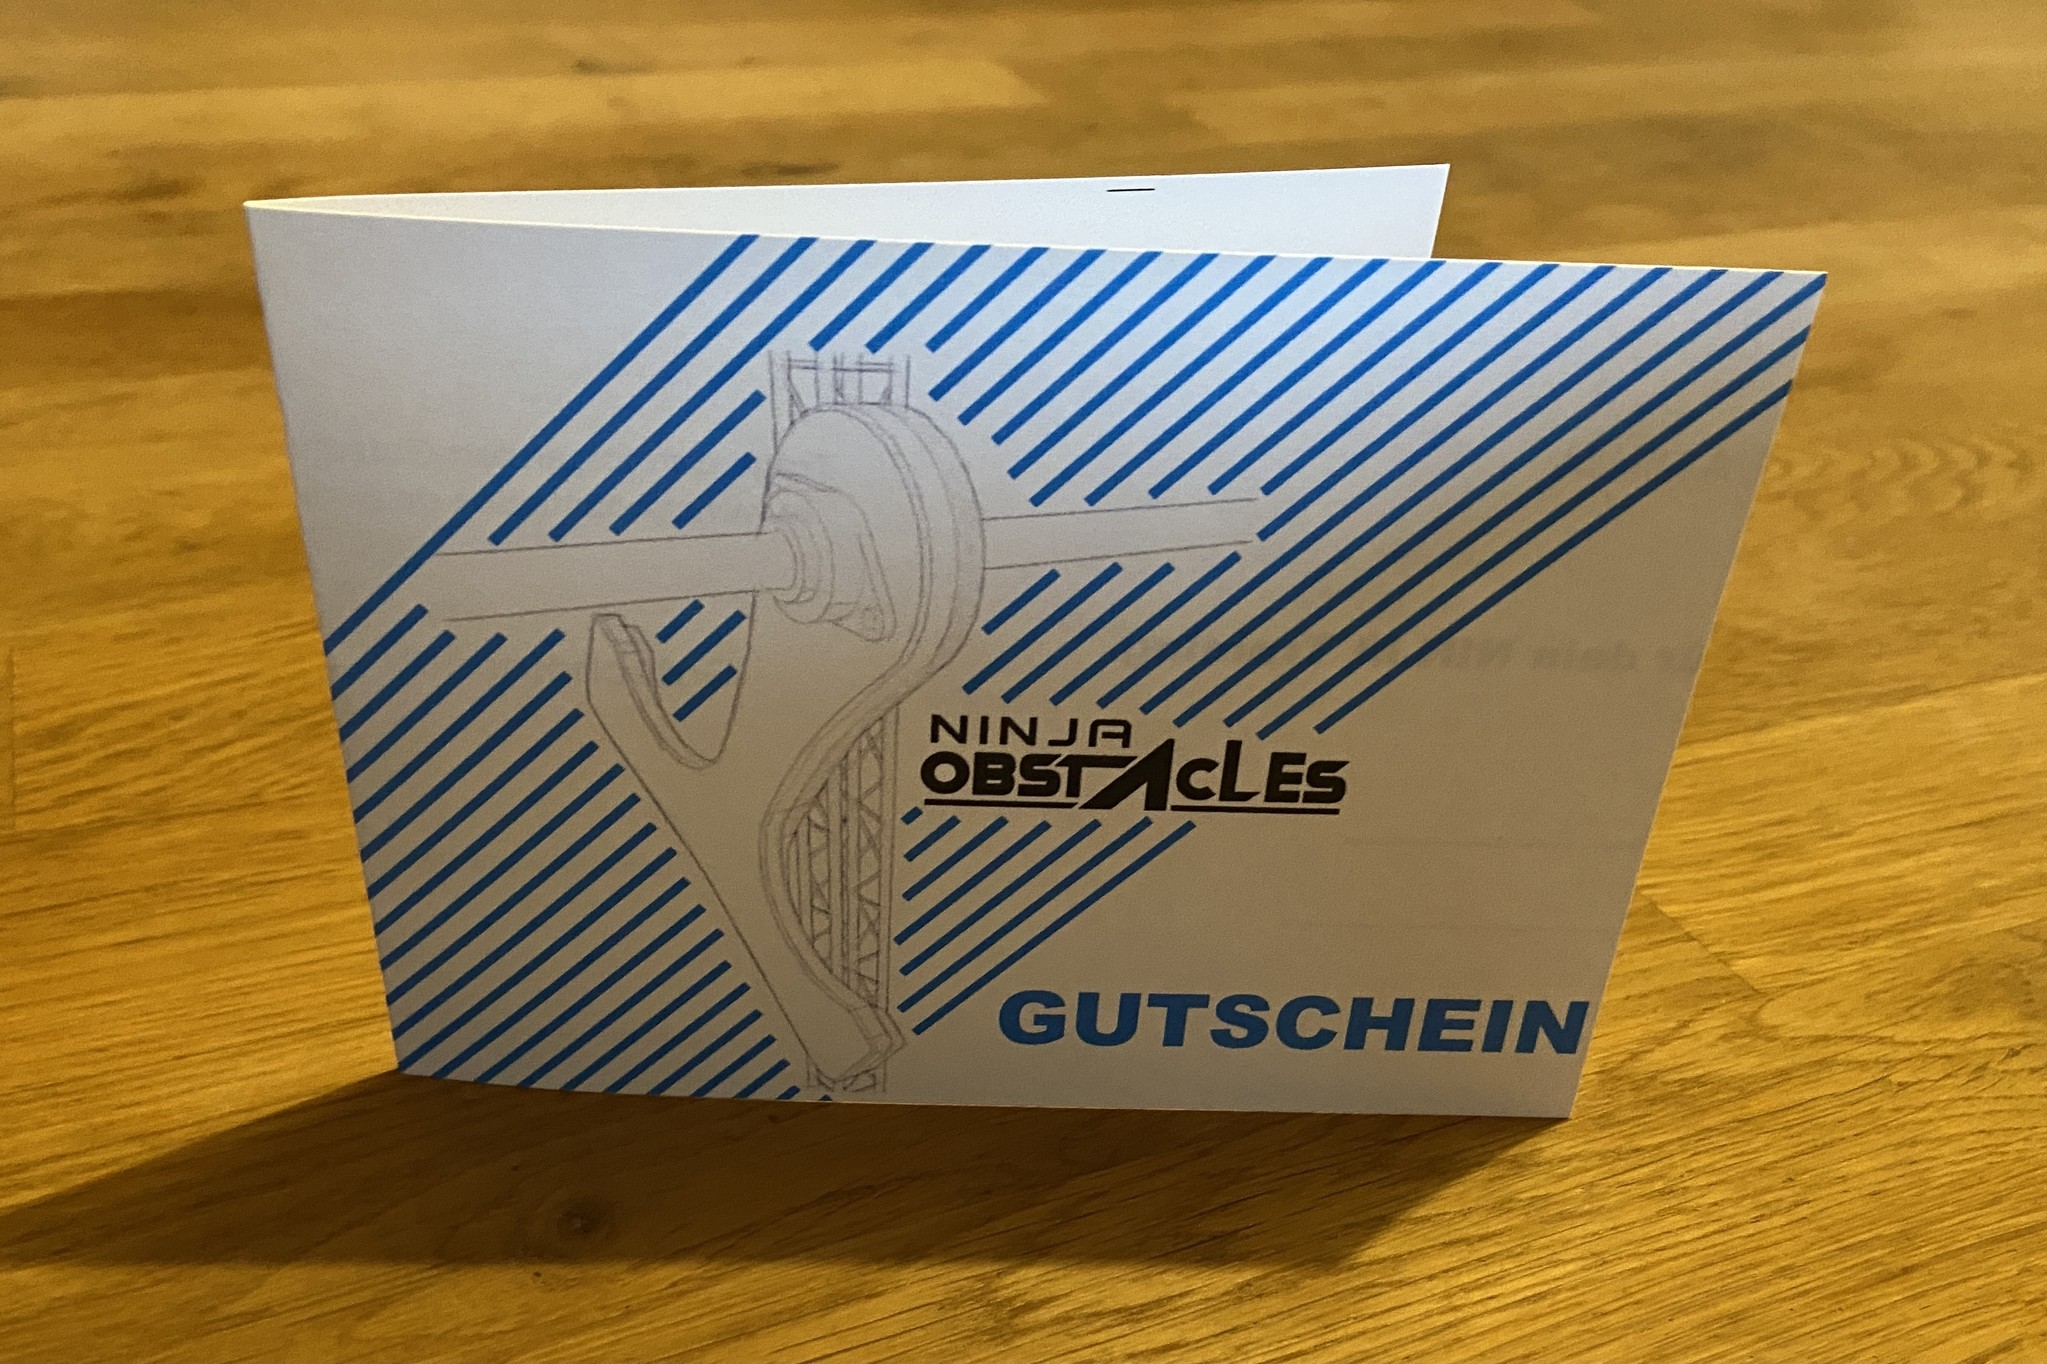 gift voucher for the NINJA OBSTACLES Onlineshop